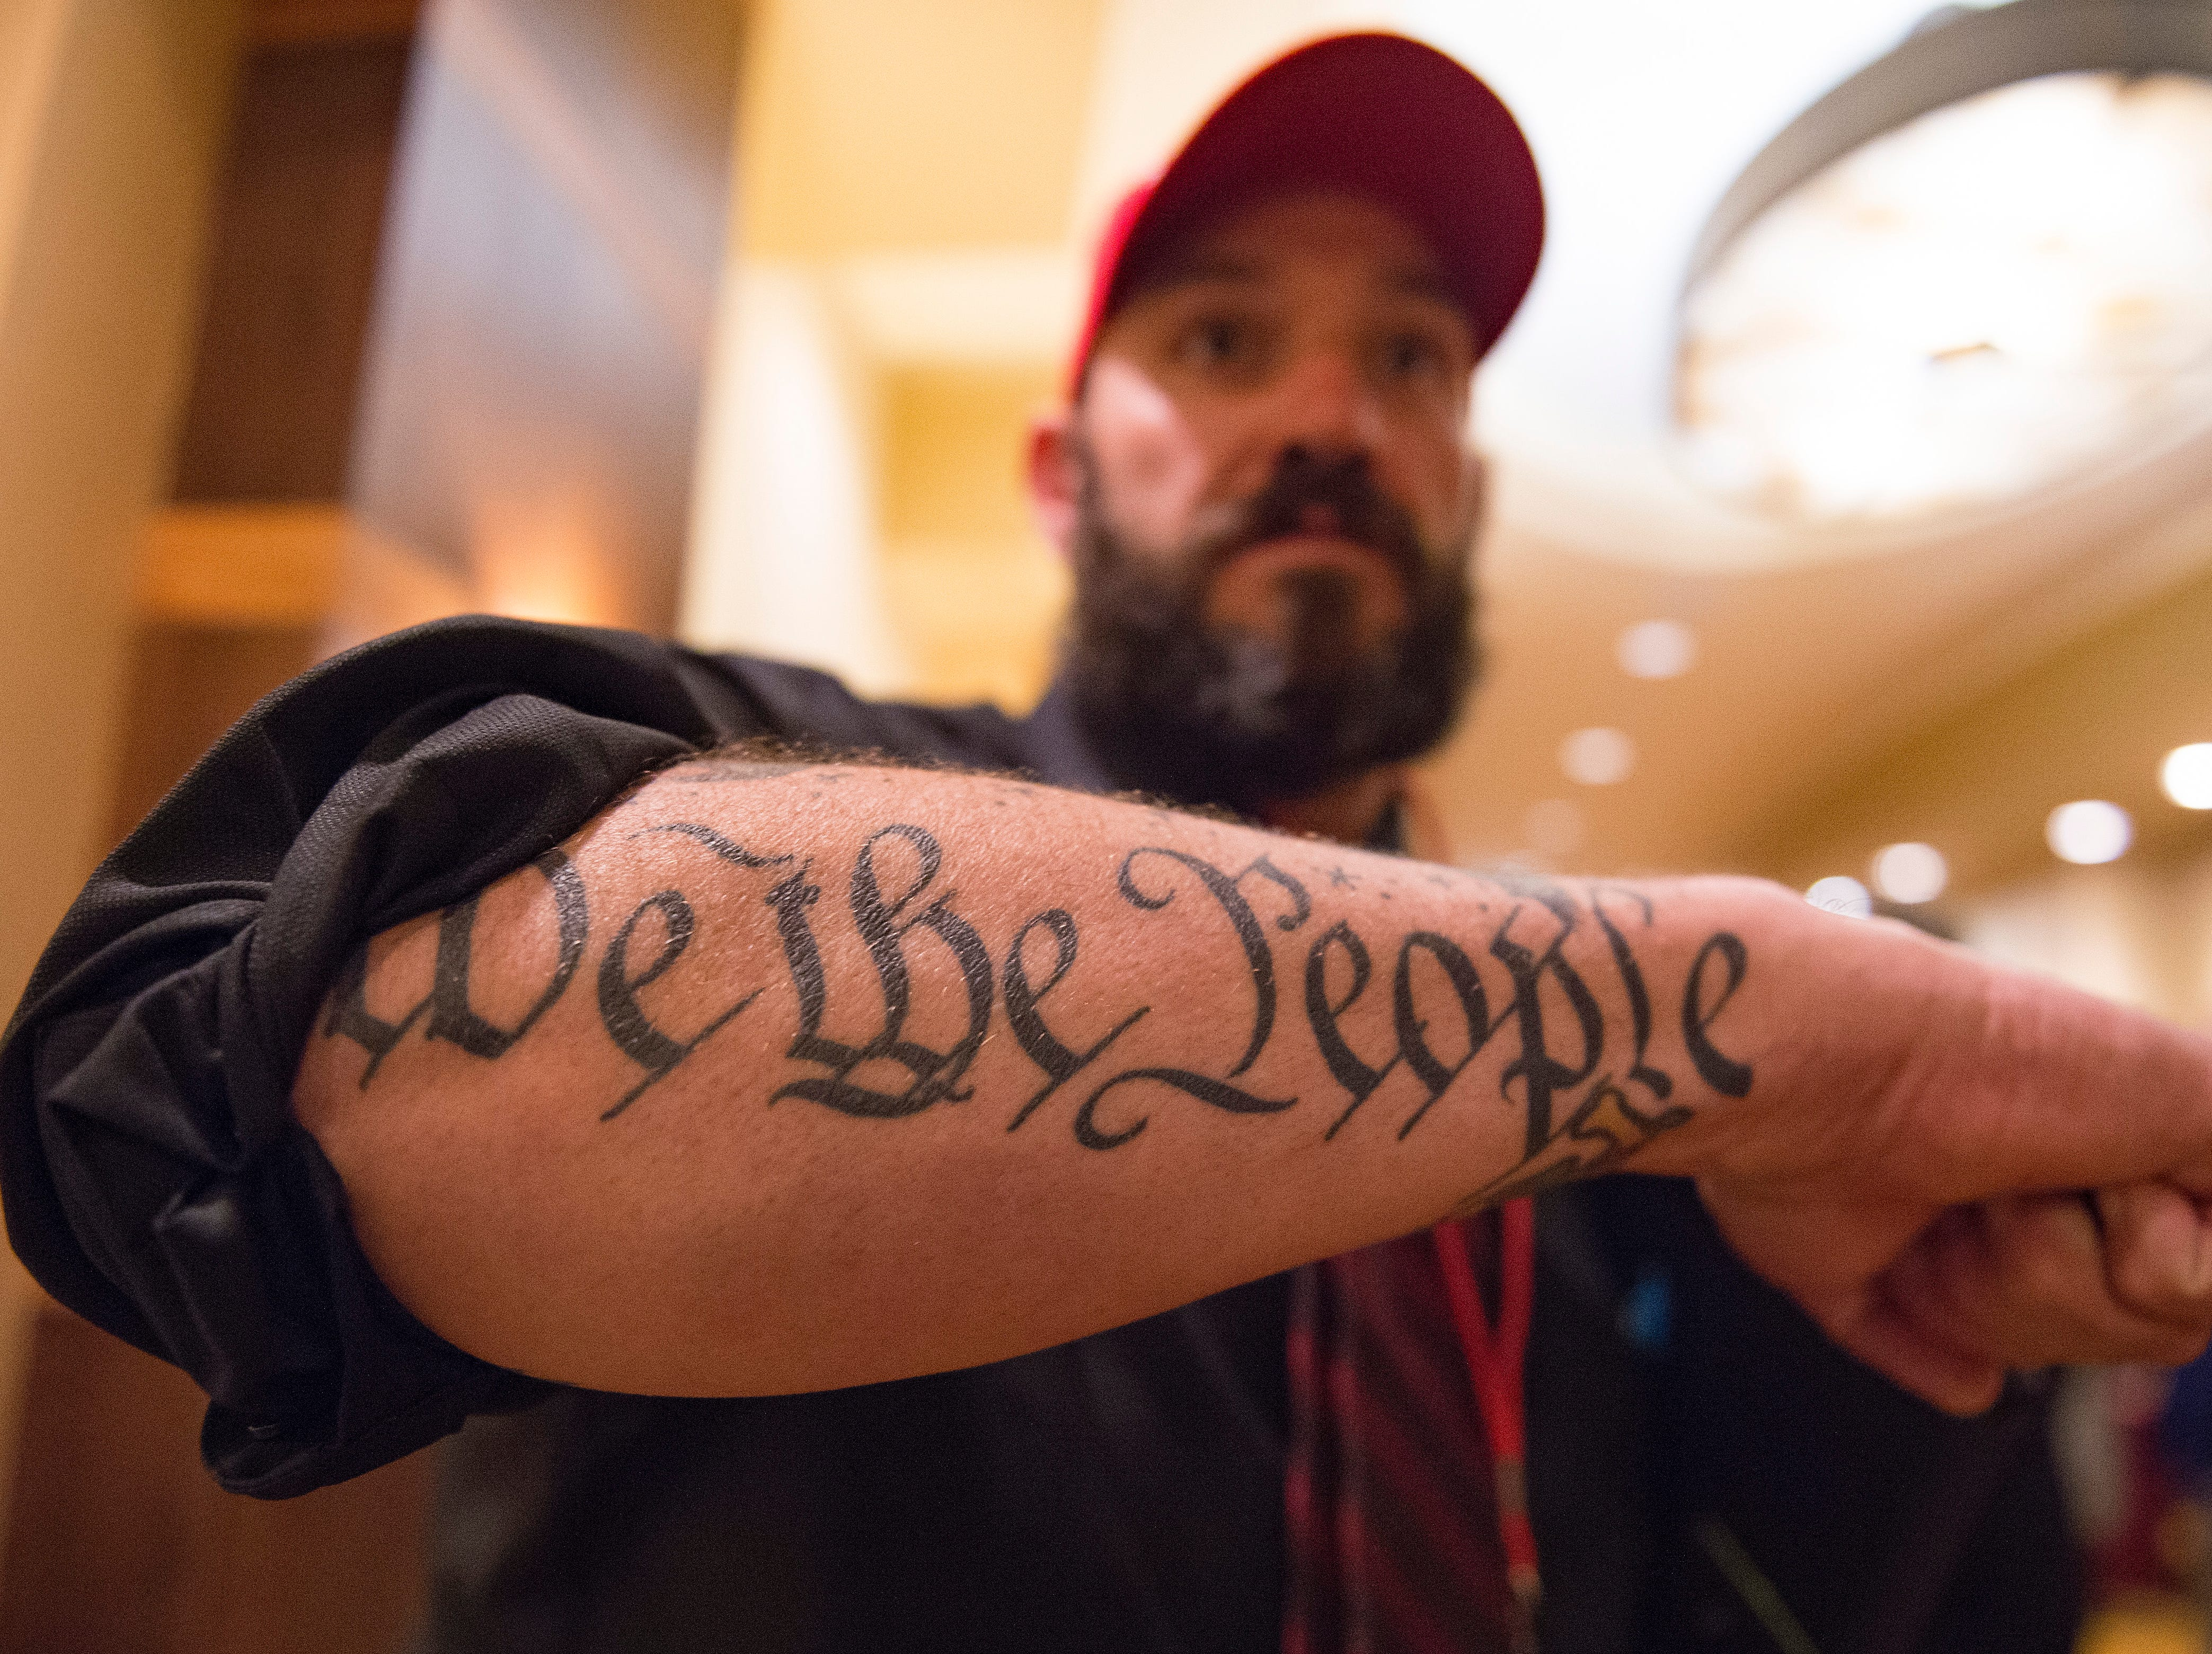 Ty Winter shows off a tattoo inspired by the United States Constitution during a Colorado GOP watch party at the Denver Marriott South at Park Meadows in Lone Tree on Election Day, Tuesday, November 6, 2018.